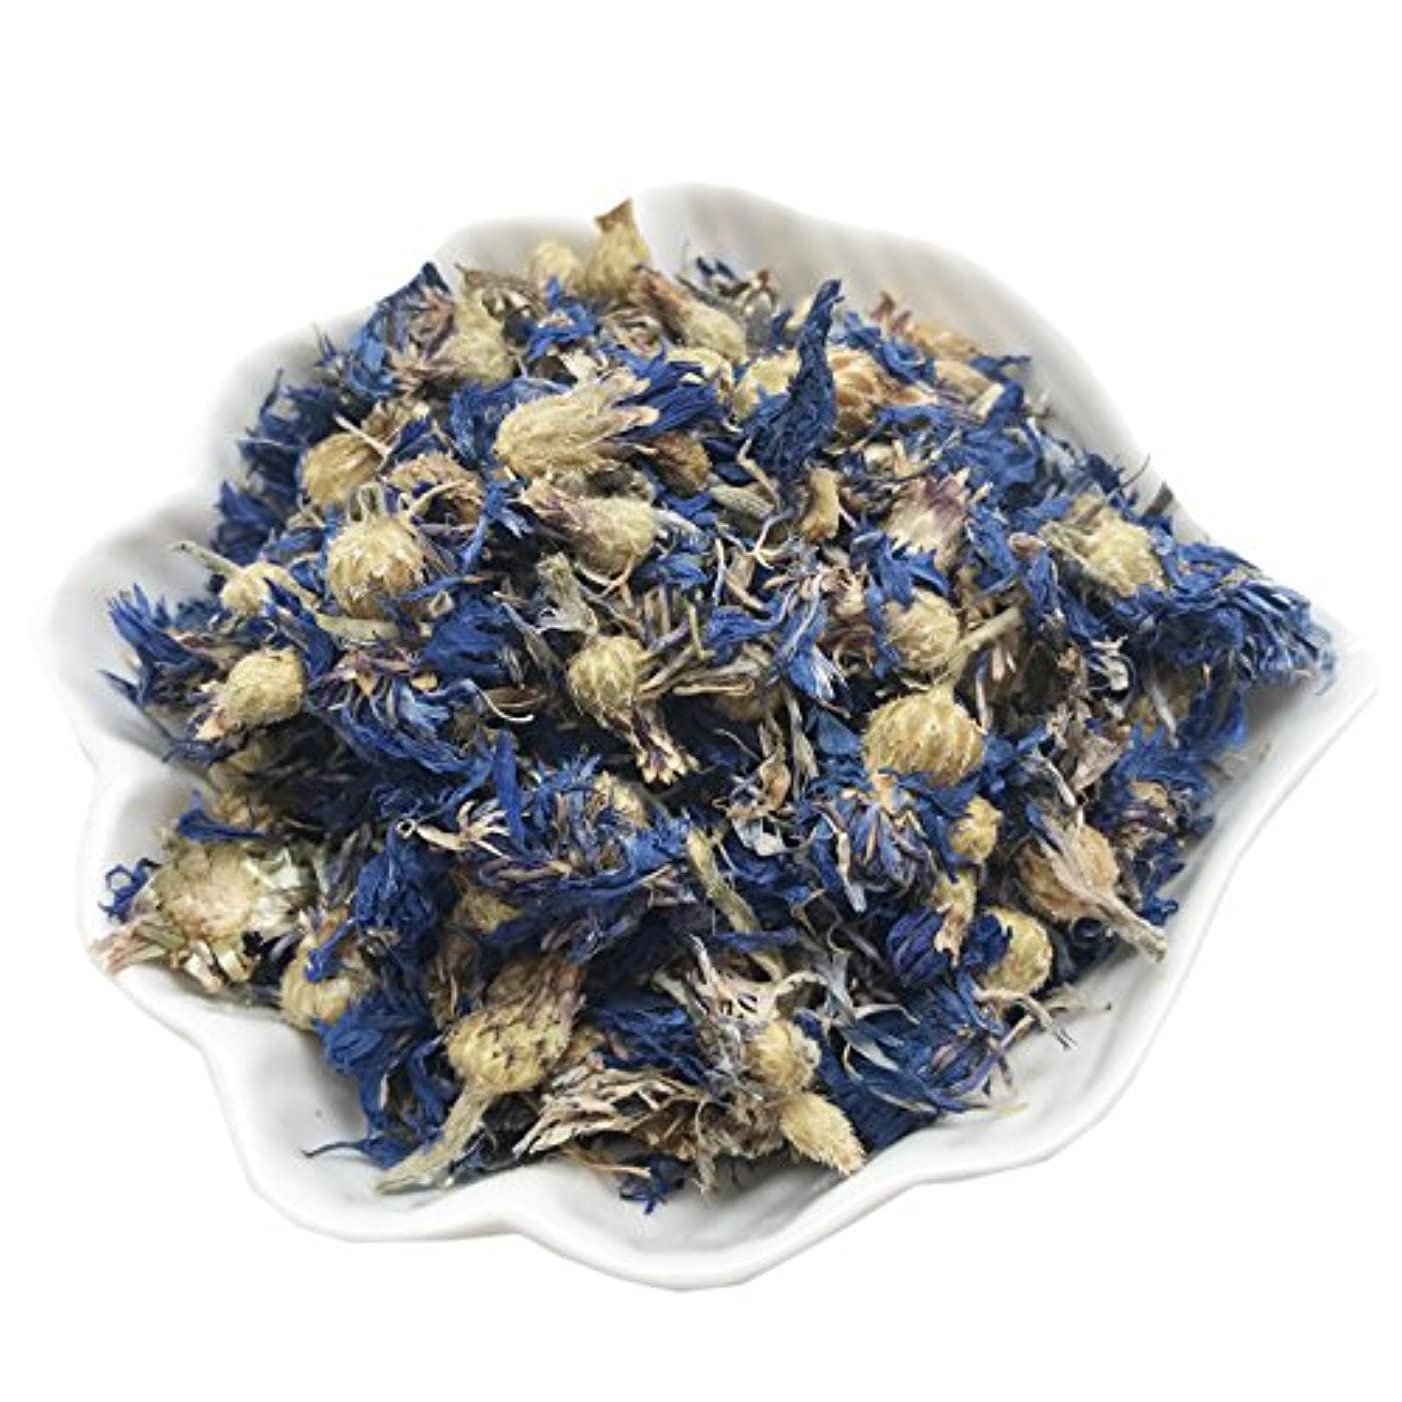 PEPPERLONELY 1oz Kosher Certified Botanical Dried Edible Cornflowers for Herb Tea, Soap Making, and Bath Bombs